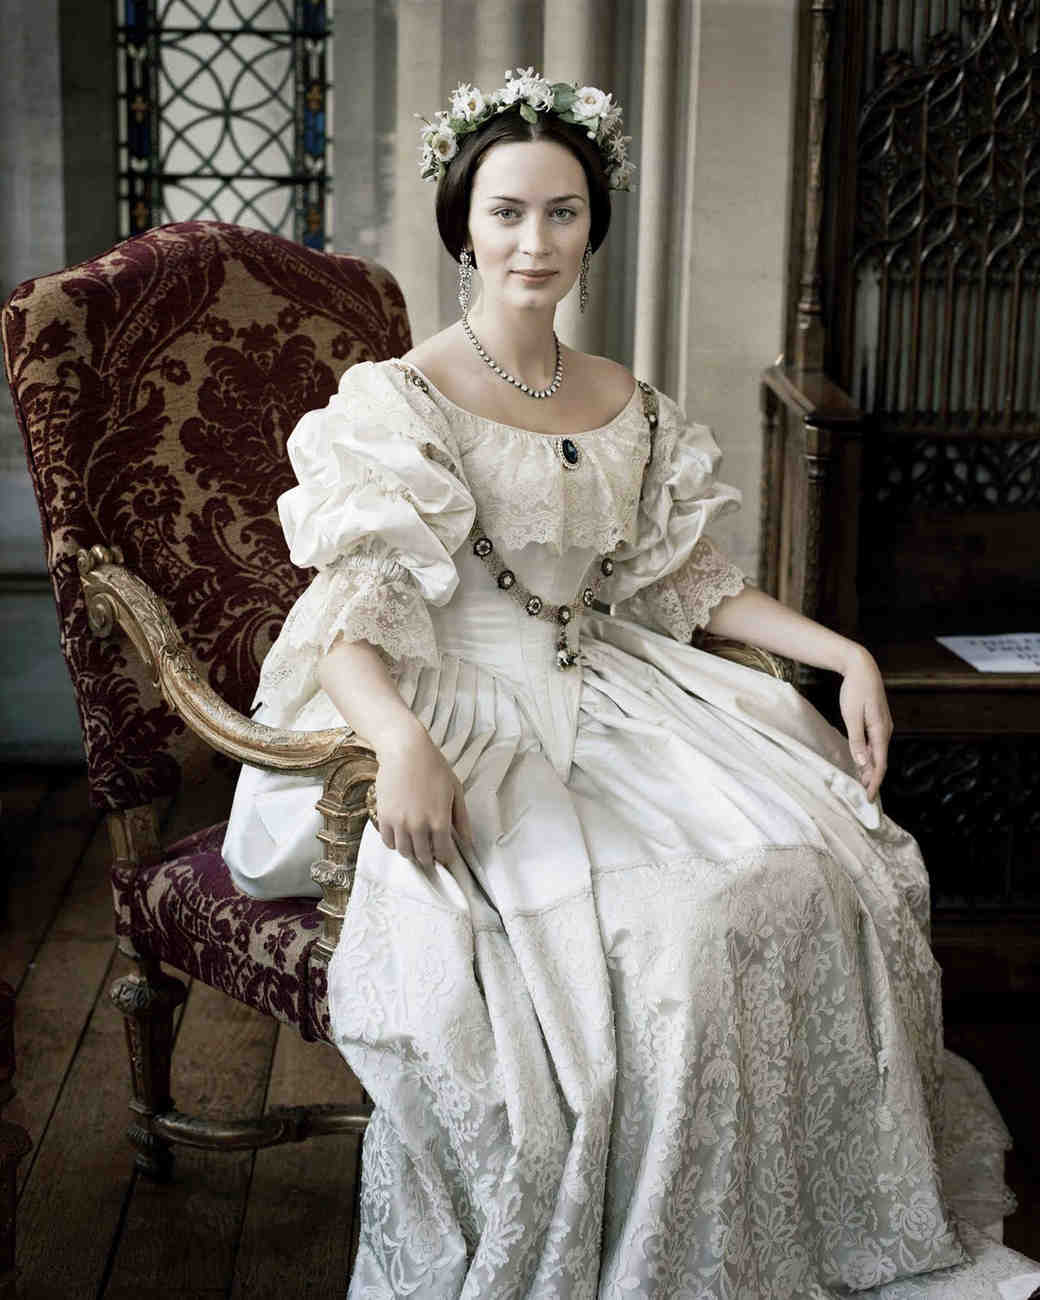 movie-wedding-dresses-the-young-queen-victoria-emily-blunt-0316.jpg